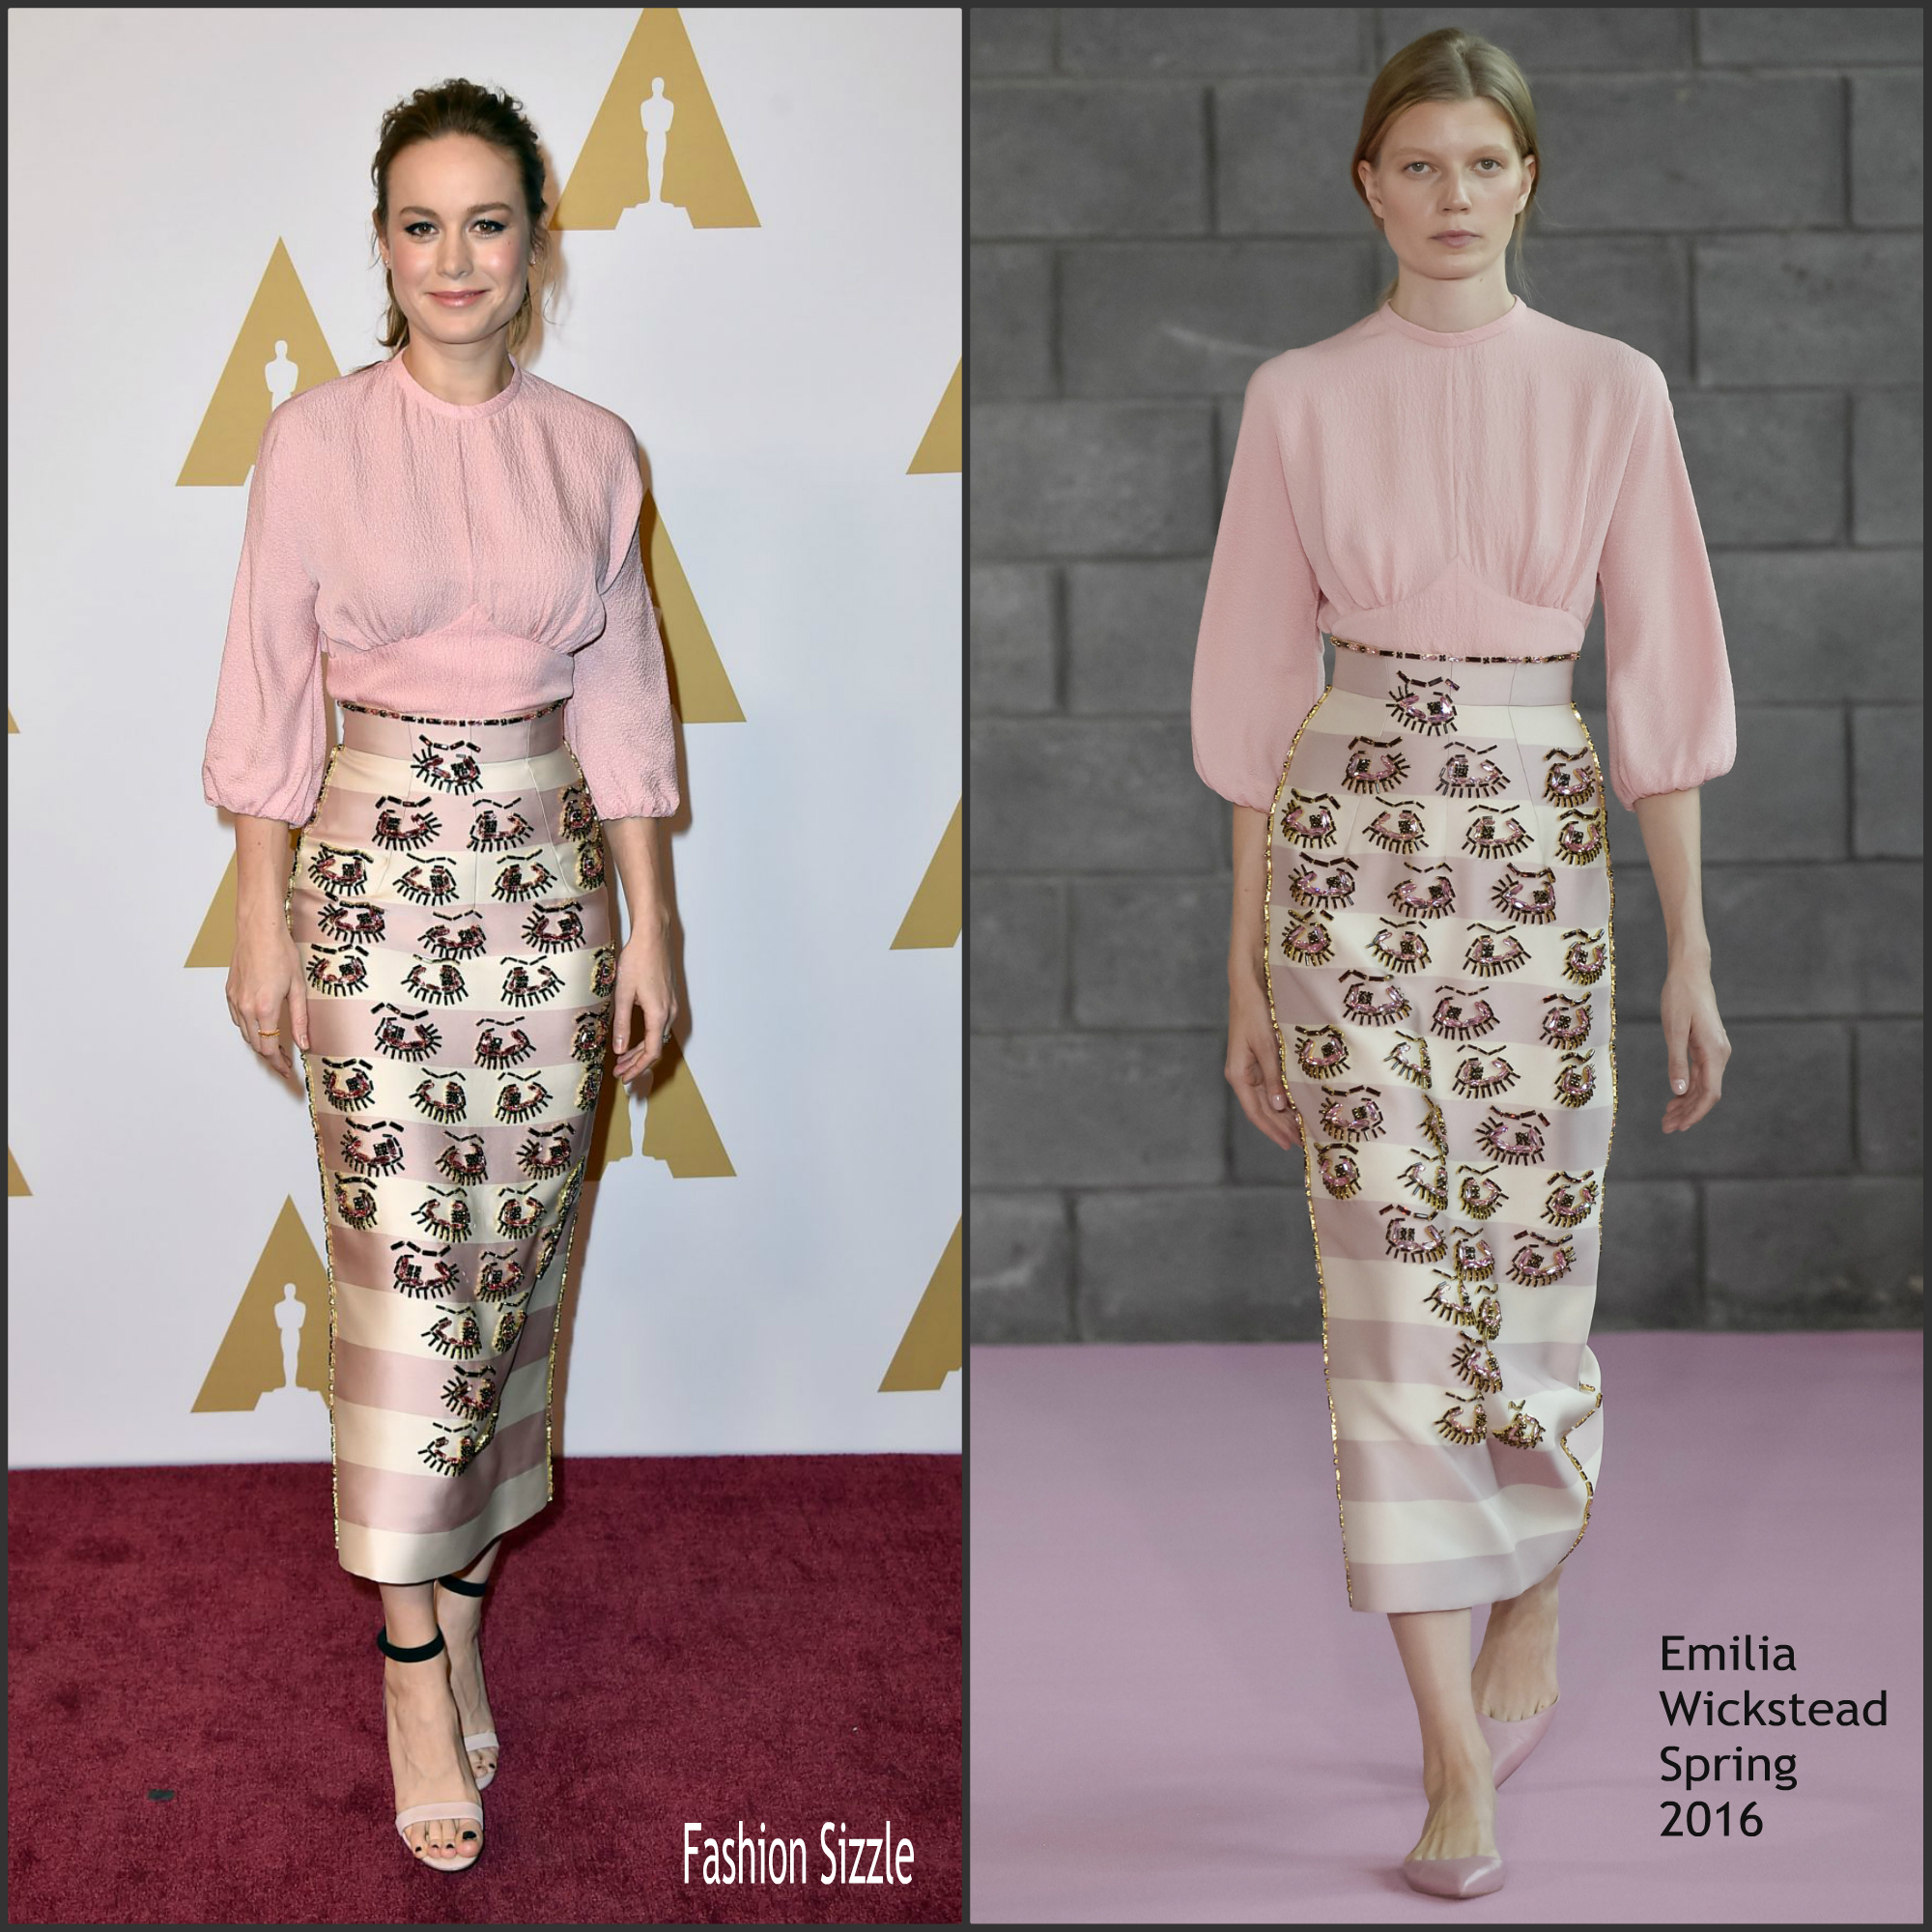 brie-larson-in-emilia-wickstead-academy-awards-2016-nominee-luncheon-in-beverly-hills